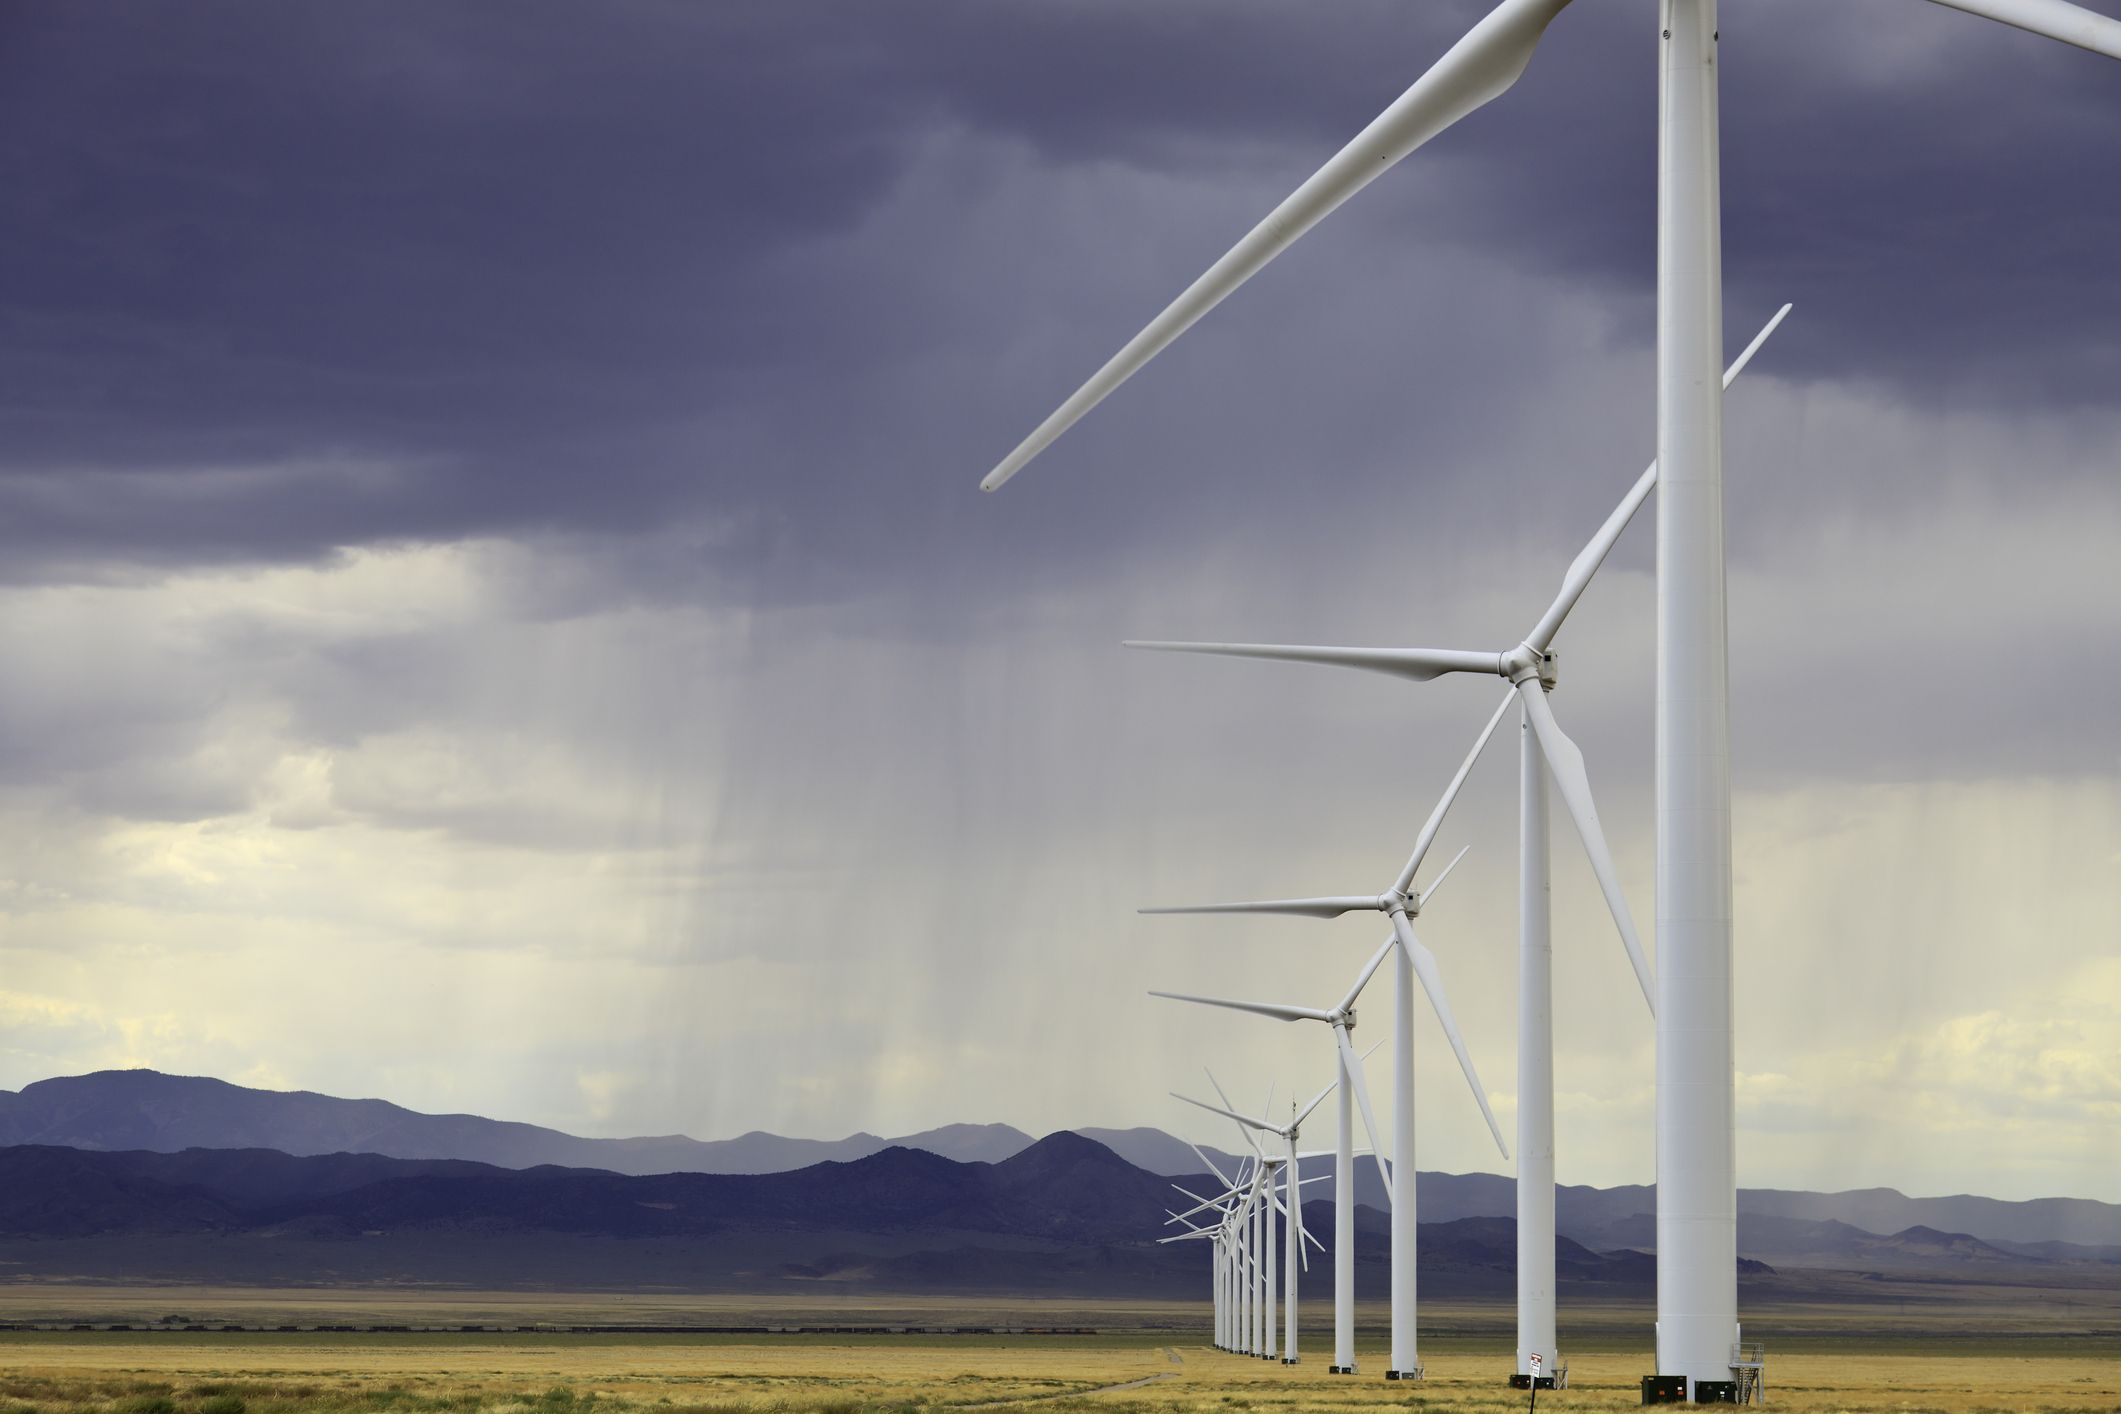 wind turbine manufacturers are working on developing blades that are easier to recycle